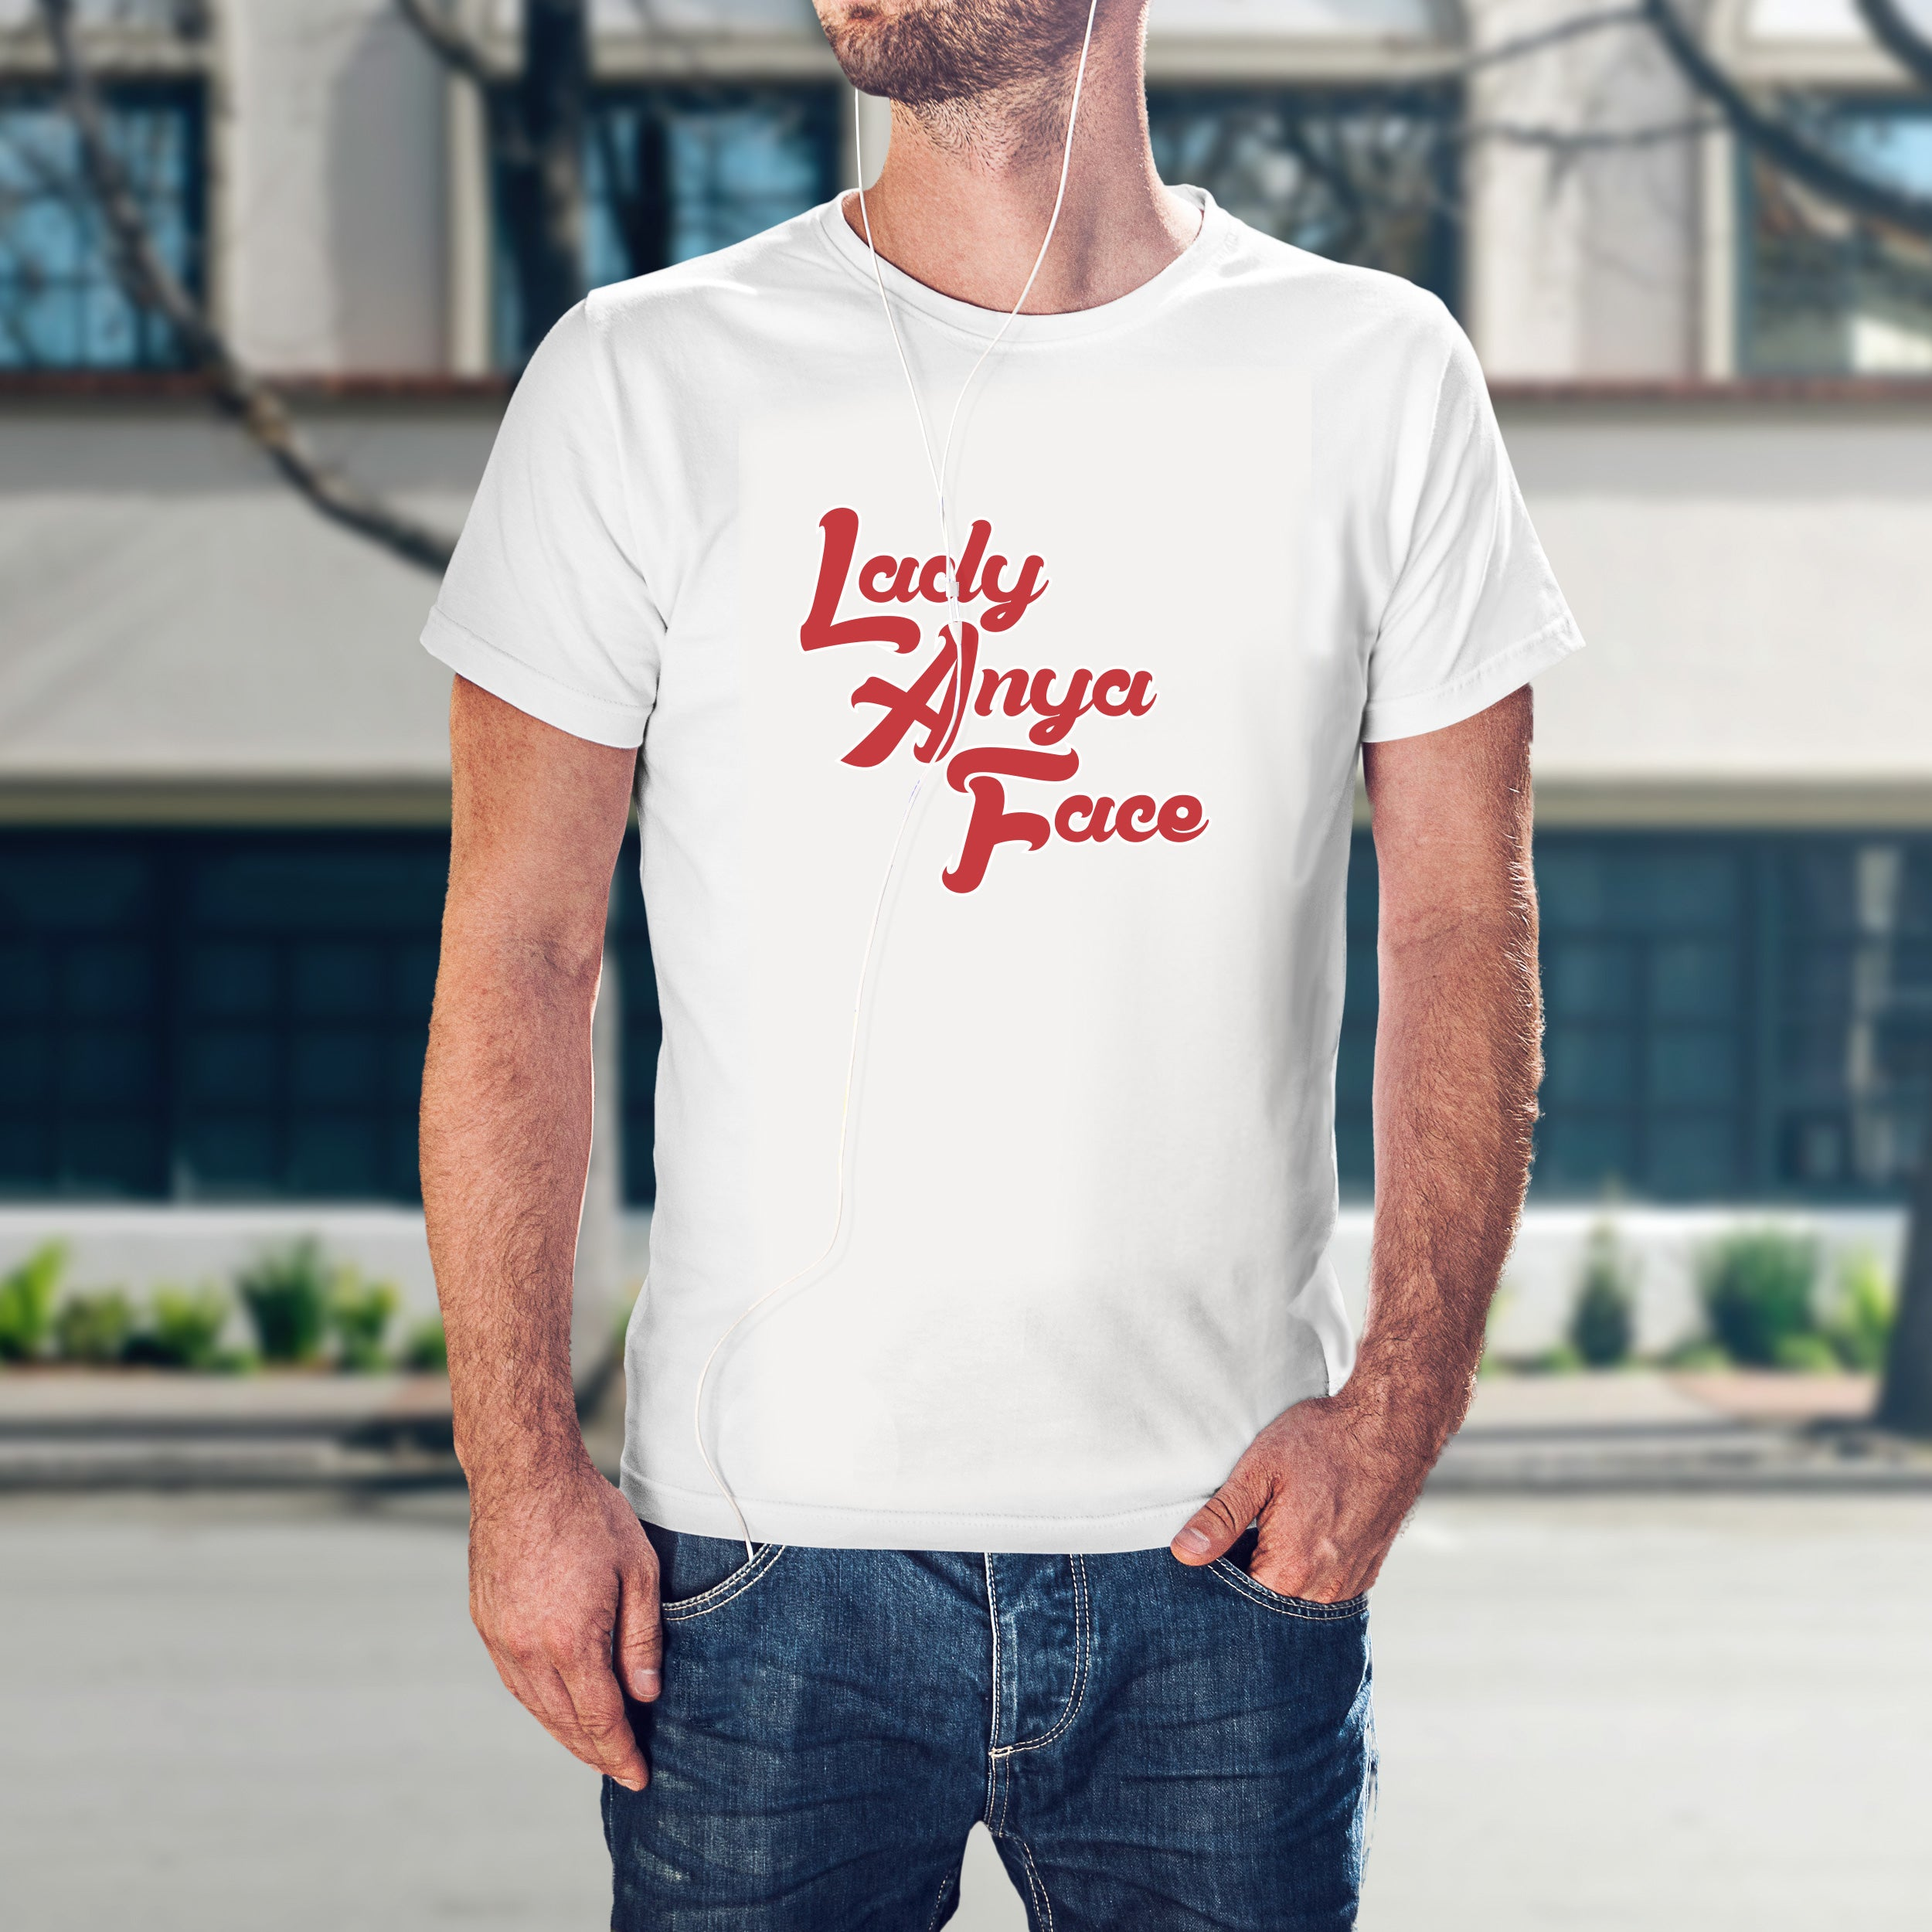 Lady Anya Face - Name shirt